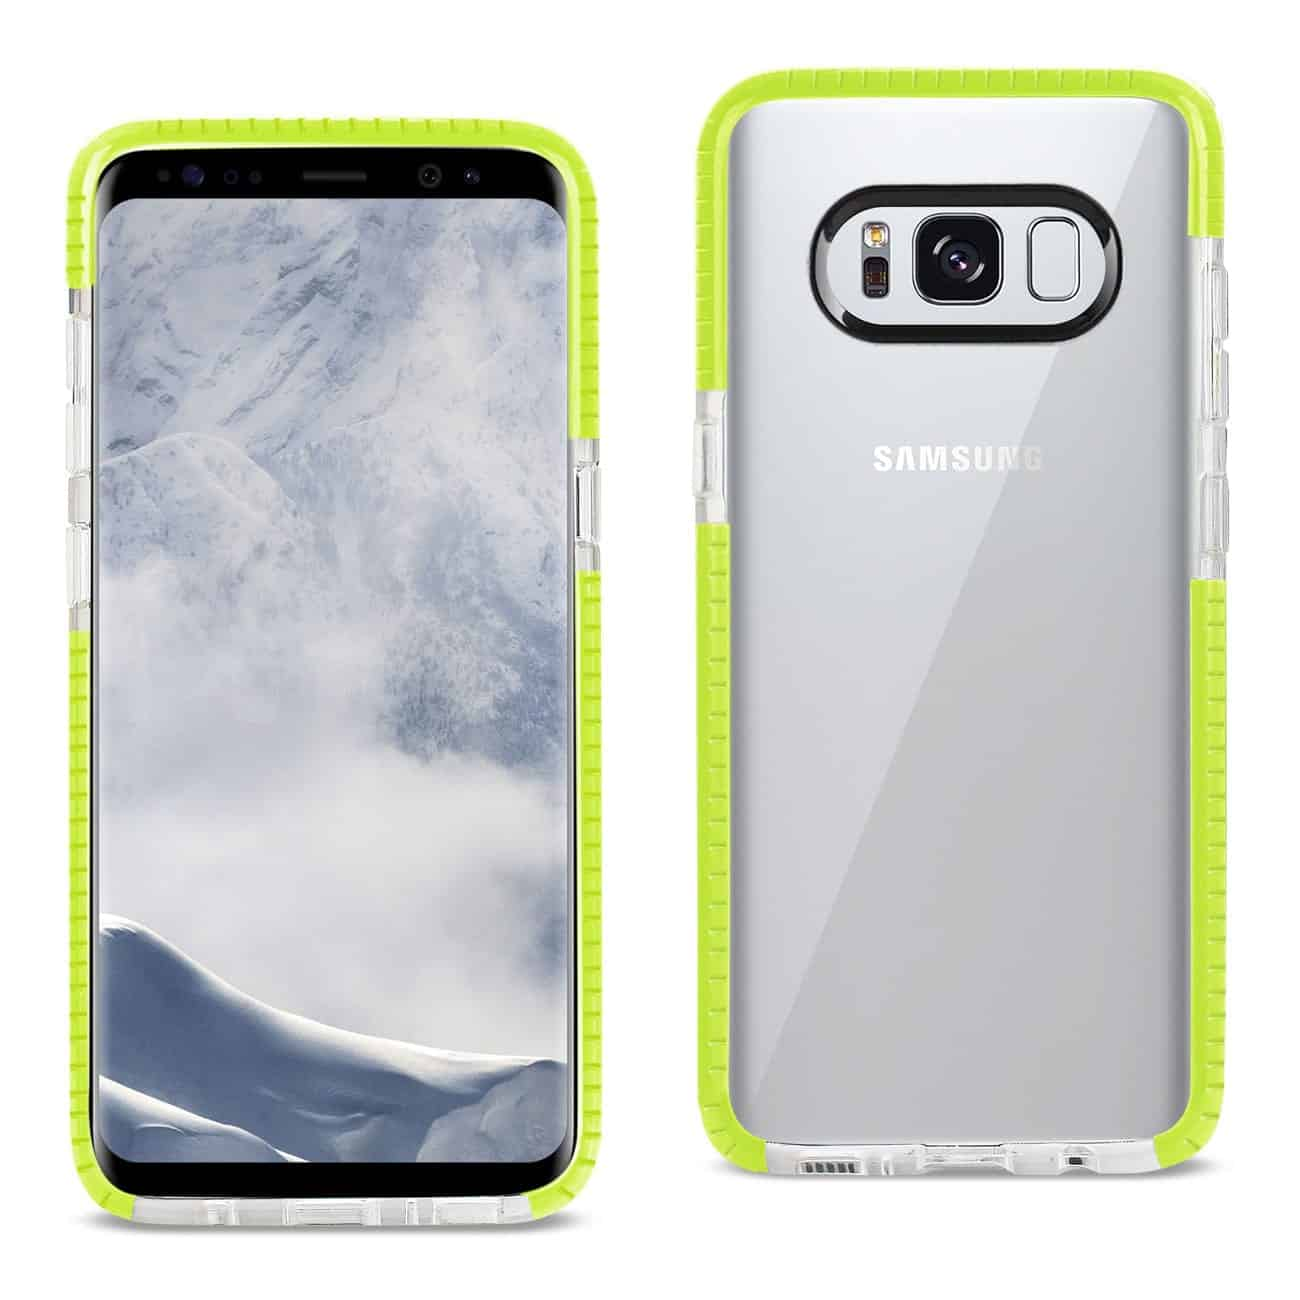 SAMSUNG GALAXY S8 EDGE/ S8 PLUS SOFT TRANSPARENT TPU CASE IN CLEAR GREEN